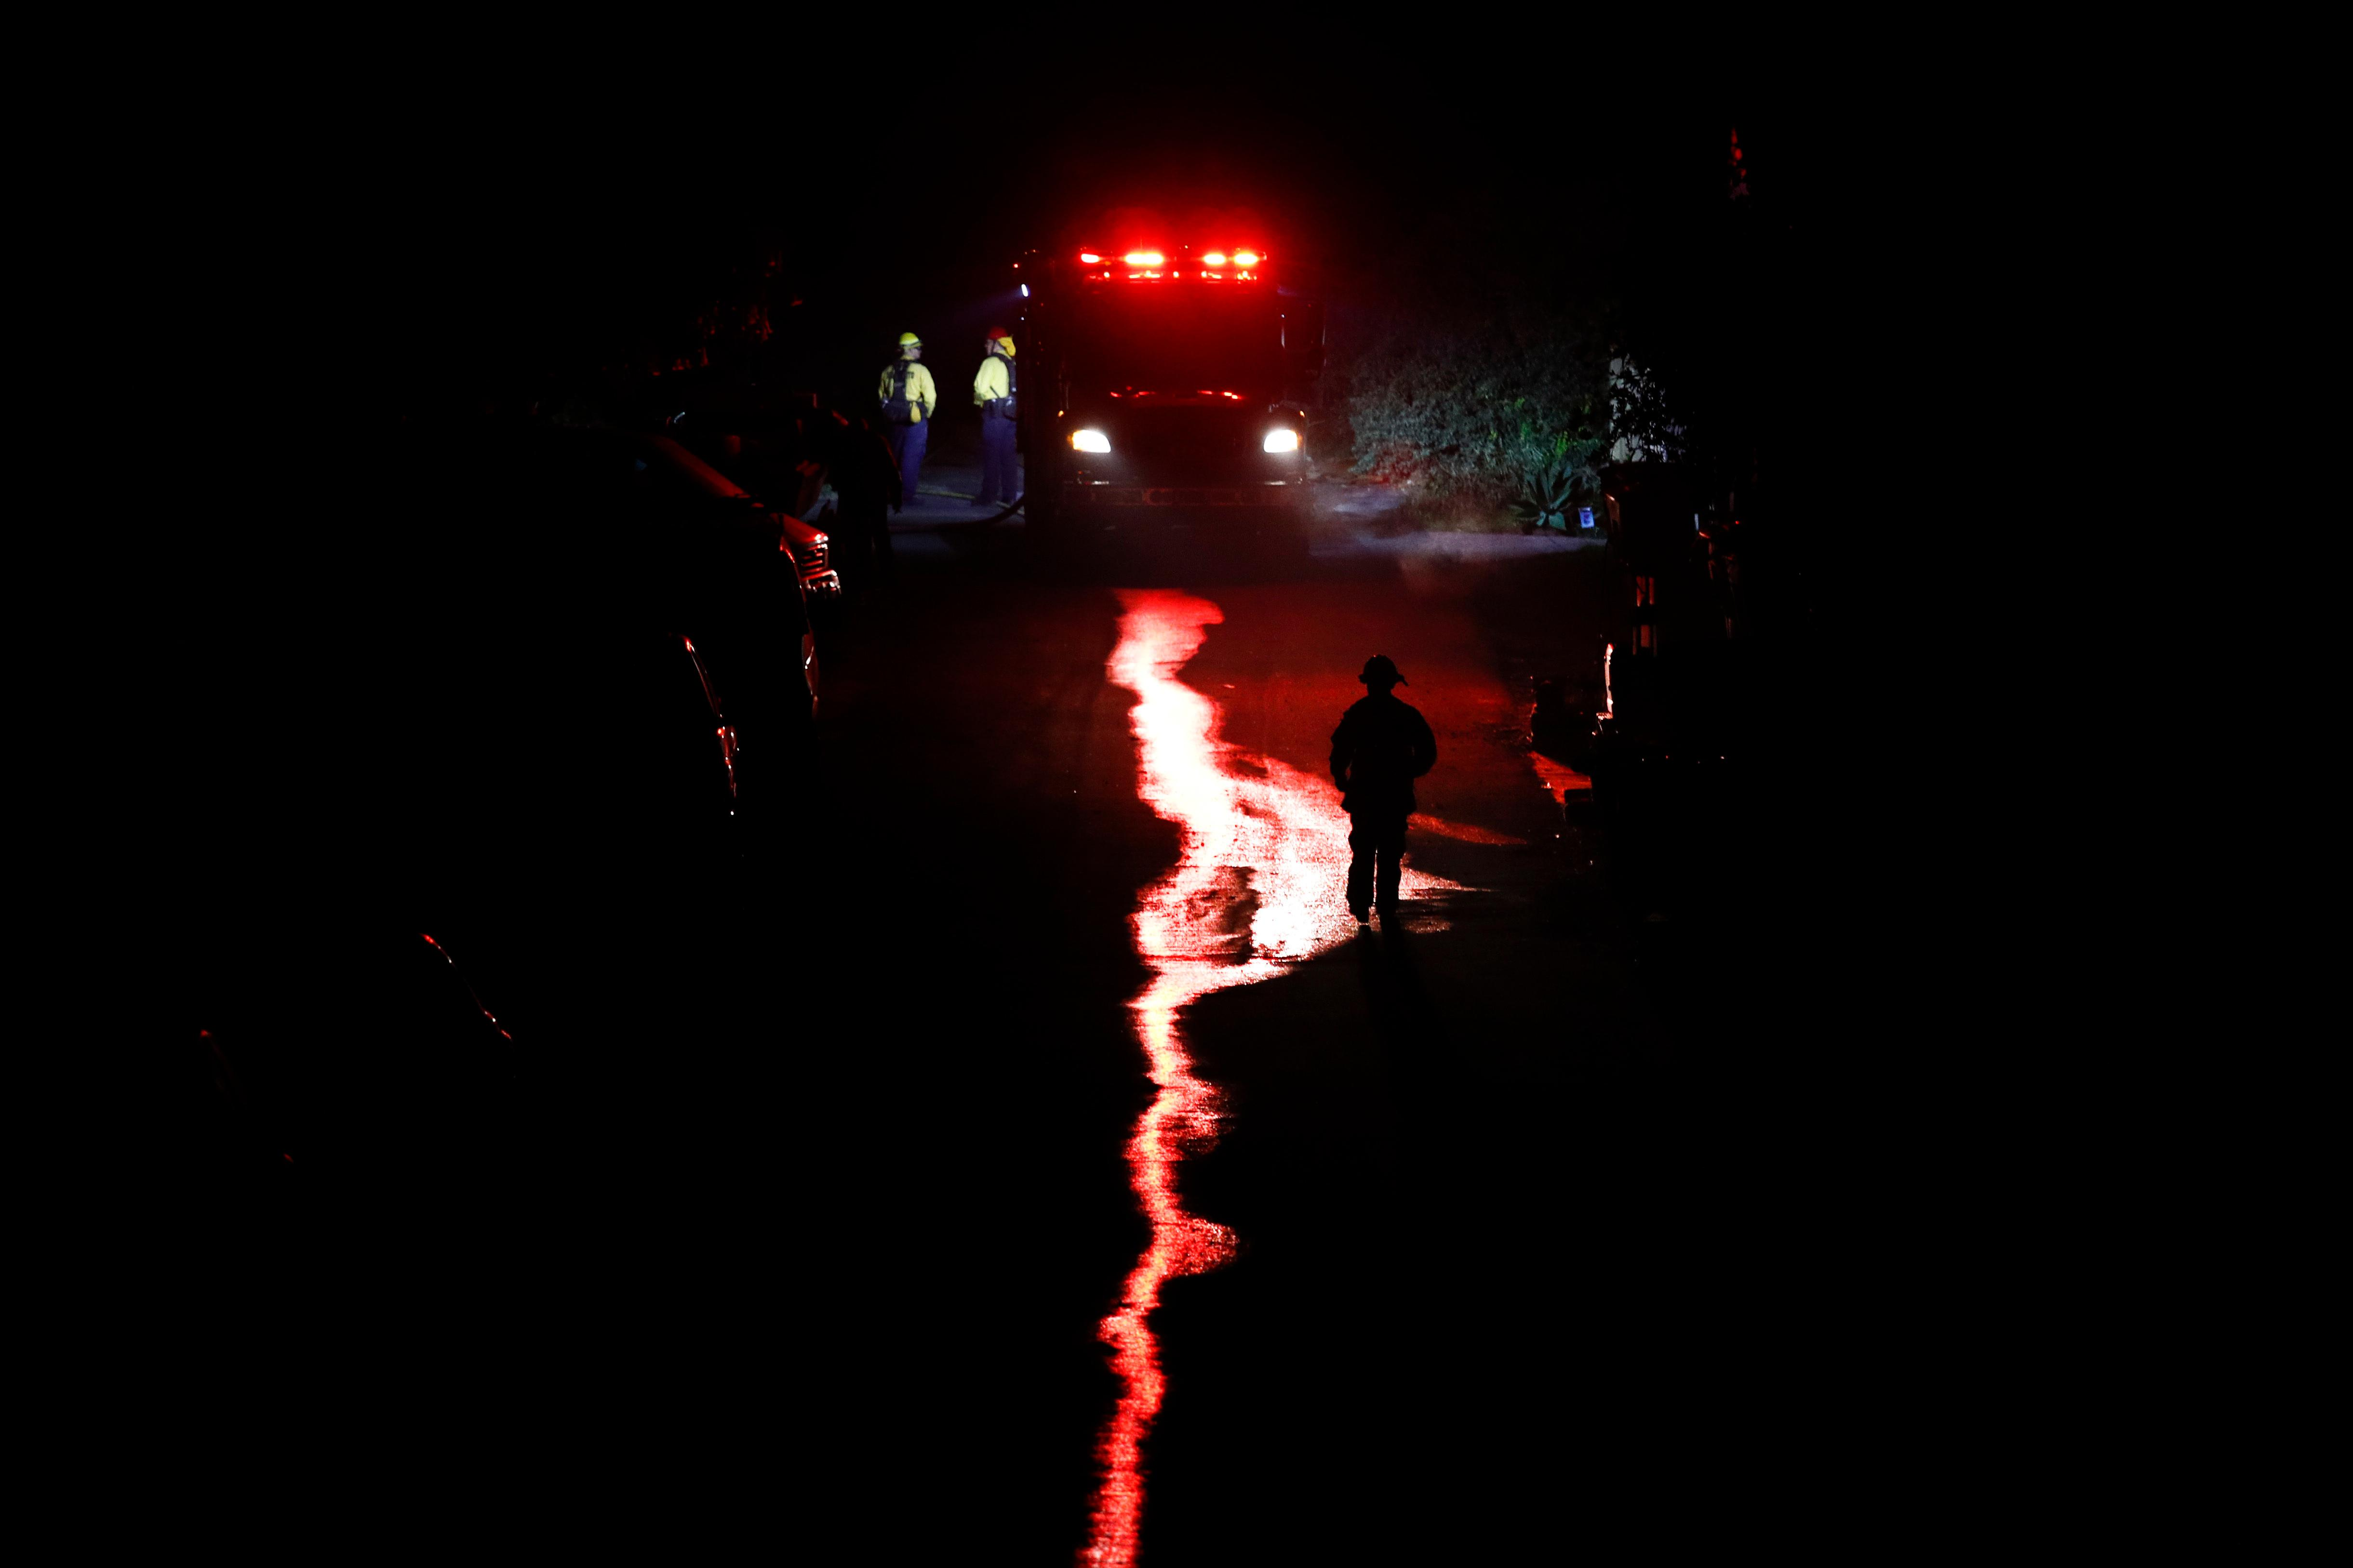 A firefighter walks along an alley toward a firetruck as a wildfire burns along a hillside near homes in La Conchita, Calif., Thursday, Dec. 7, 2017. The wind-swept blazes have forced tens of thousands of evacuations and destroyed dozens of homes. (AP Photo/Jae C. Hong)